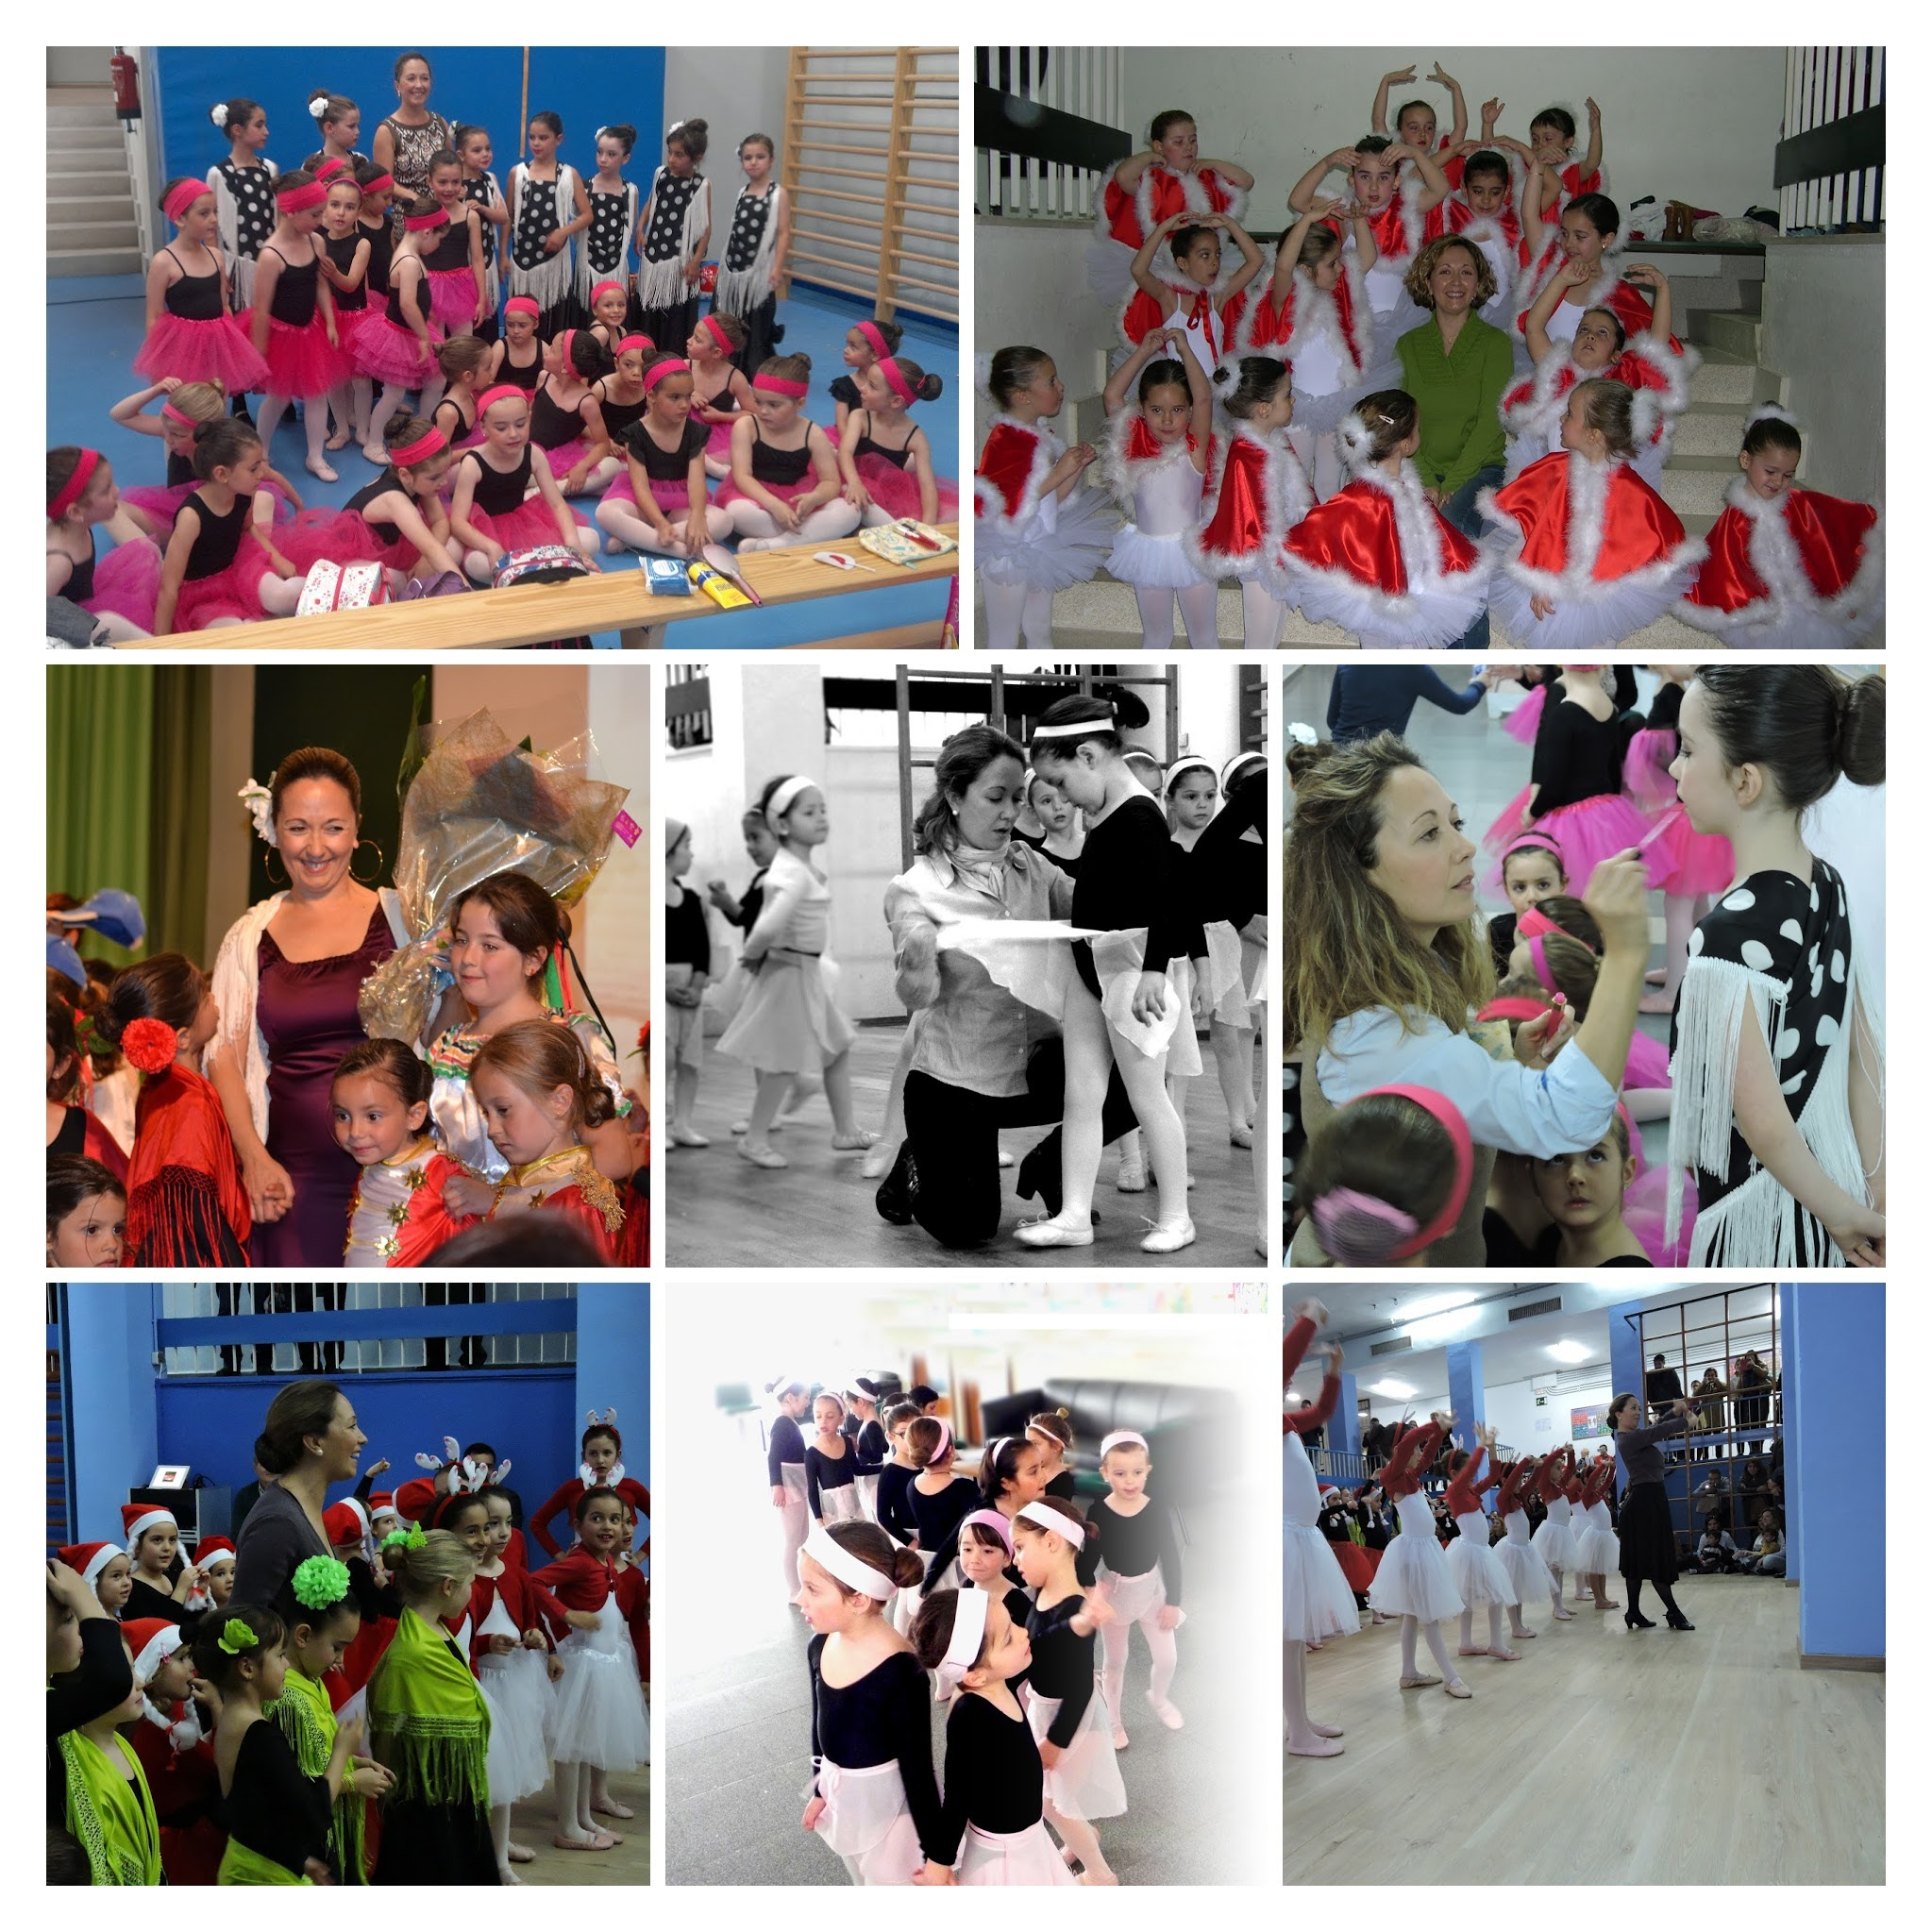 Danza web collage